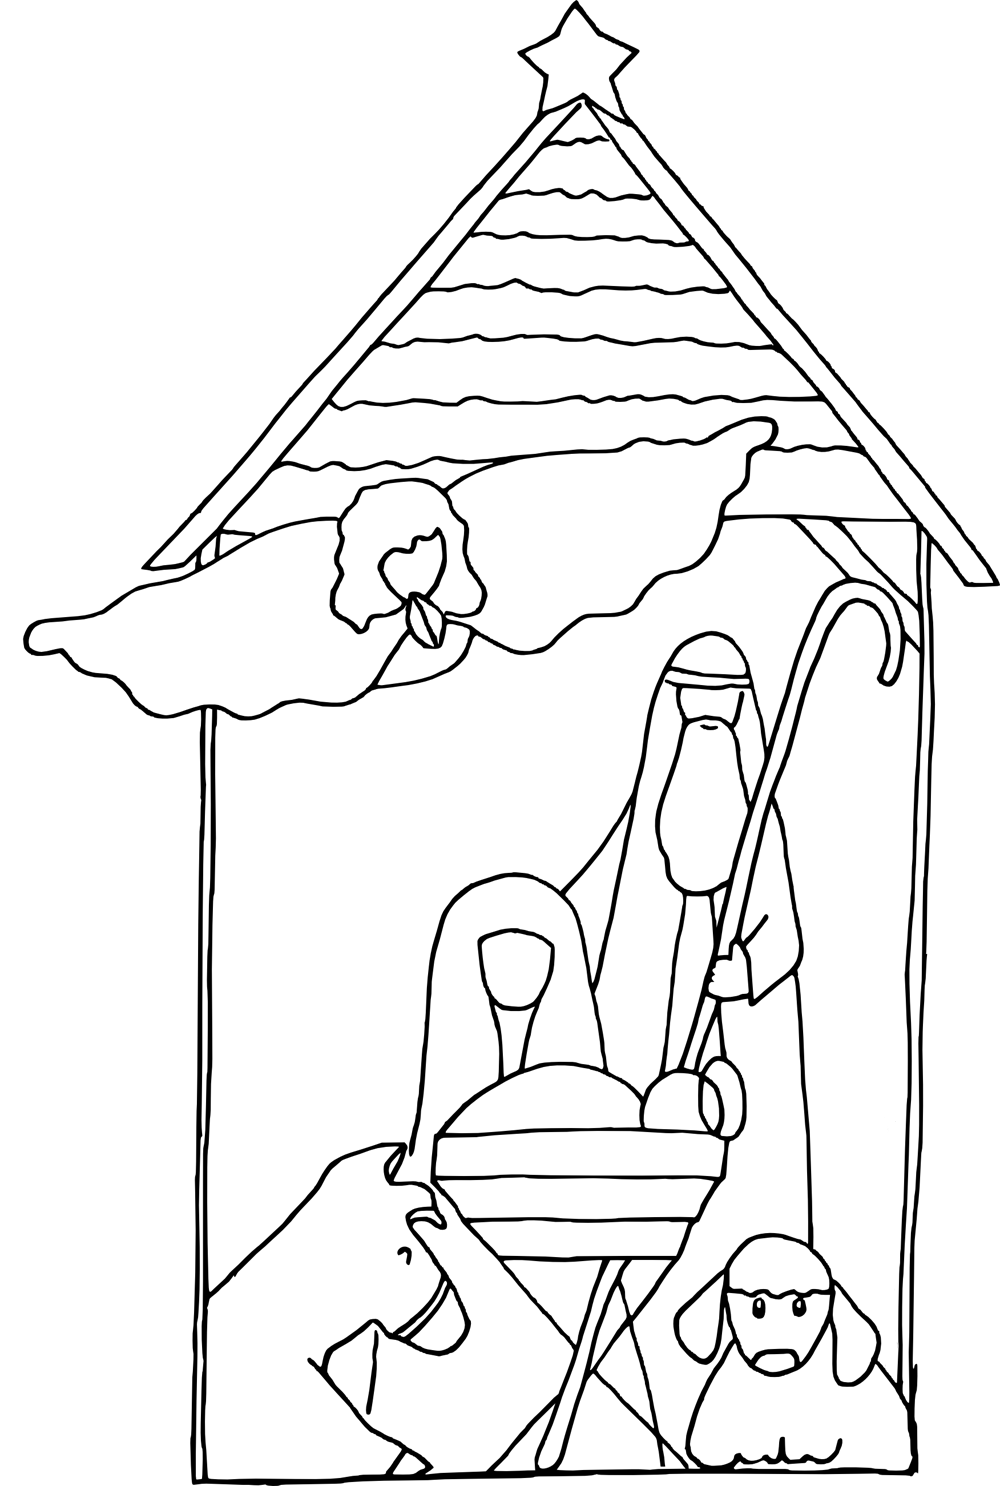 Nativity Coloring Pages Nativity coloring pages